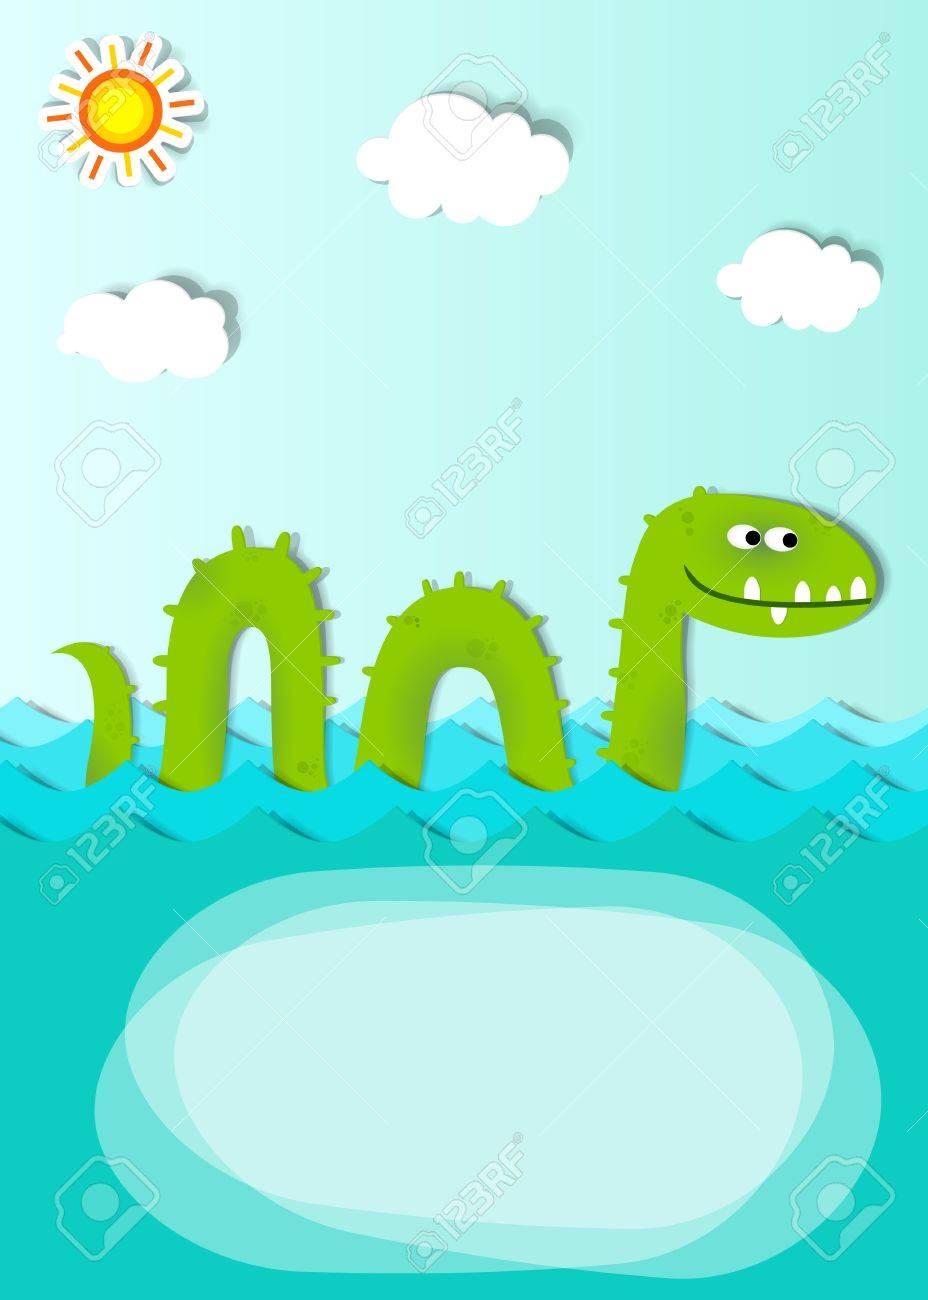 creative poster with sea monster - 12496547